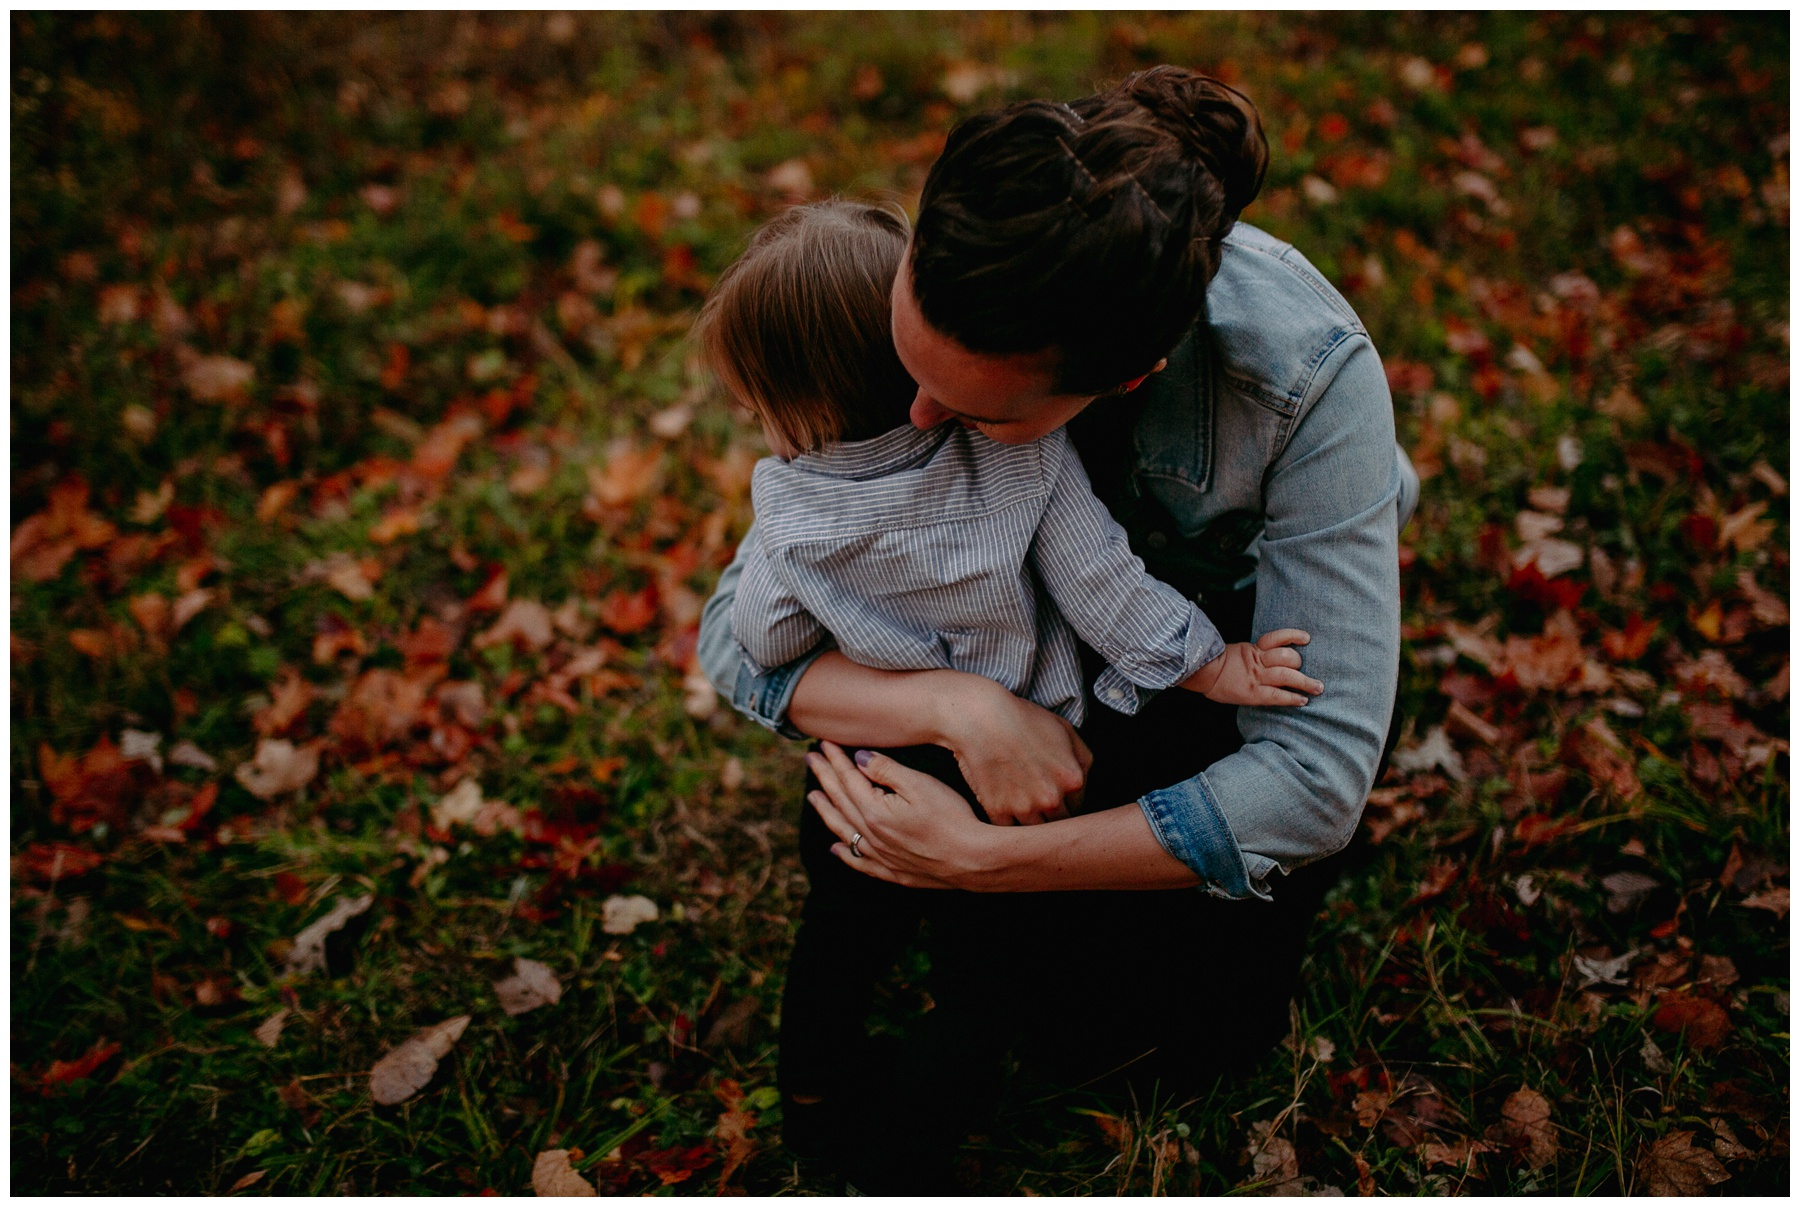 kerry ford photography - fall autumn family session perth028.jpg